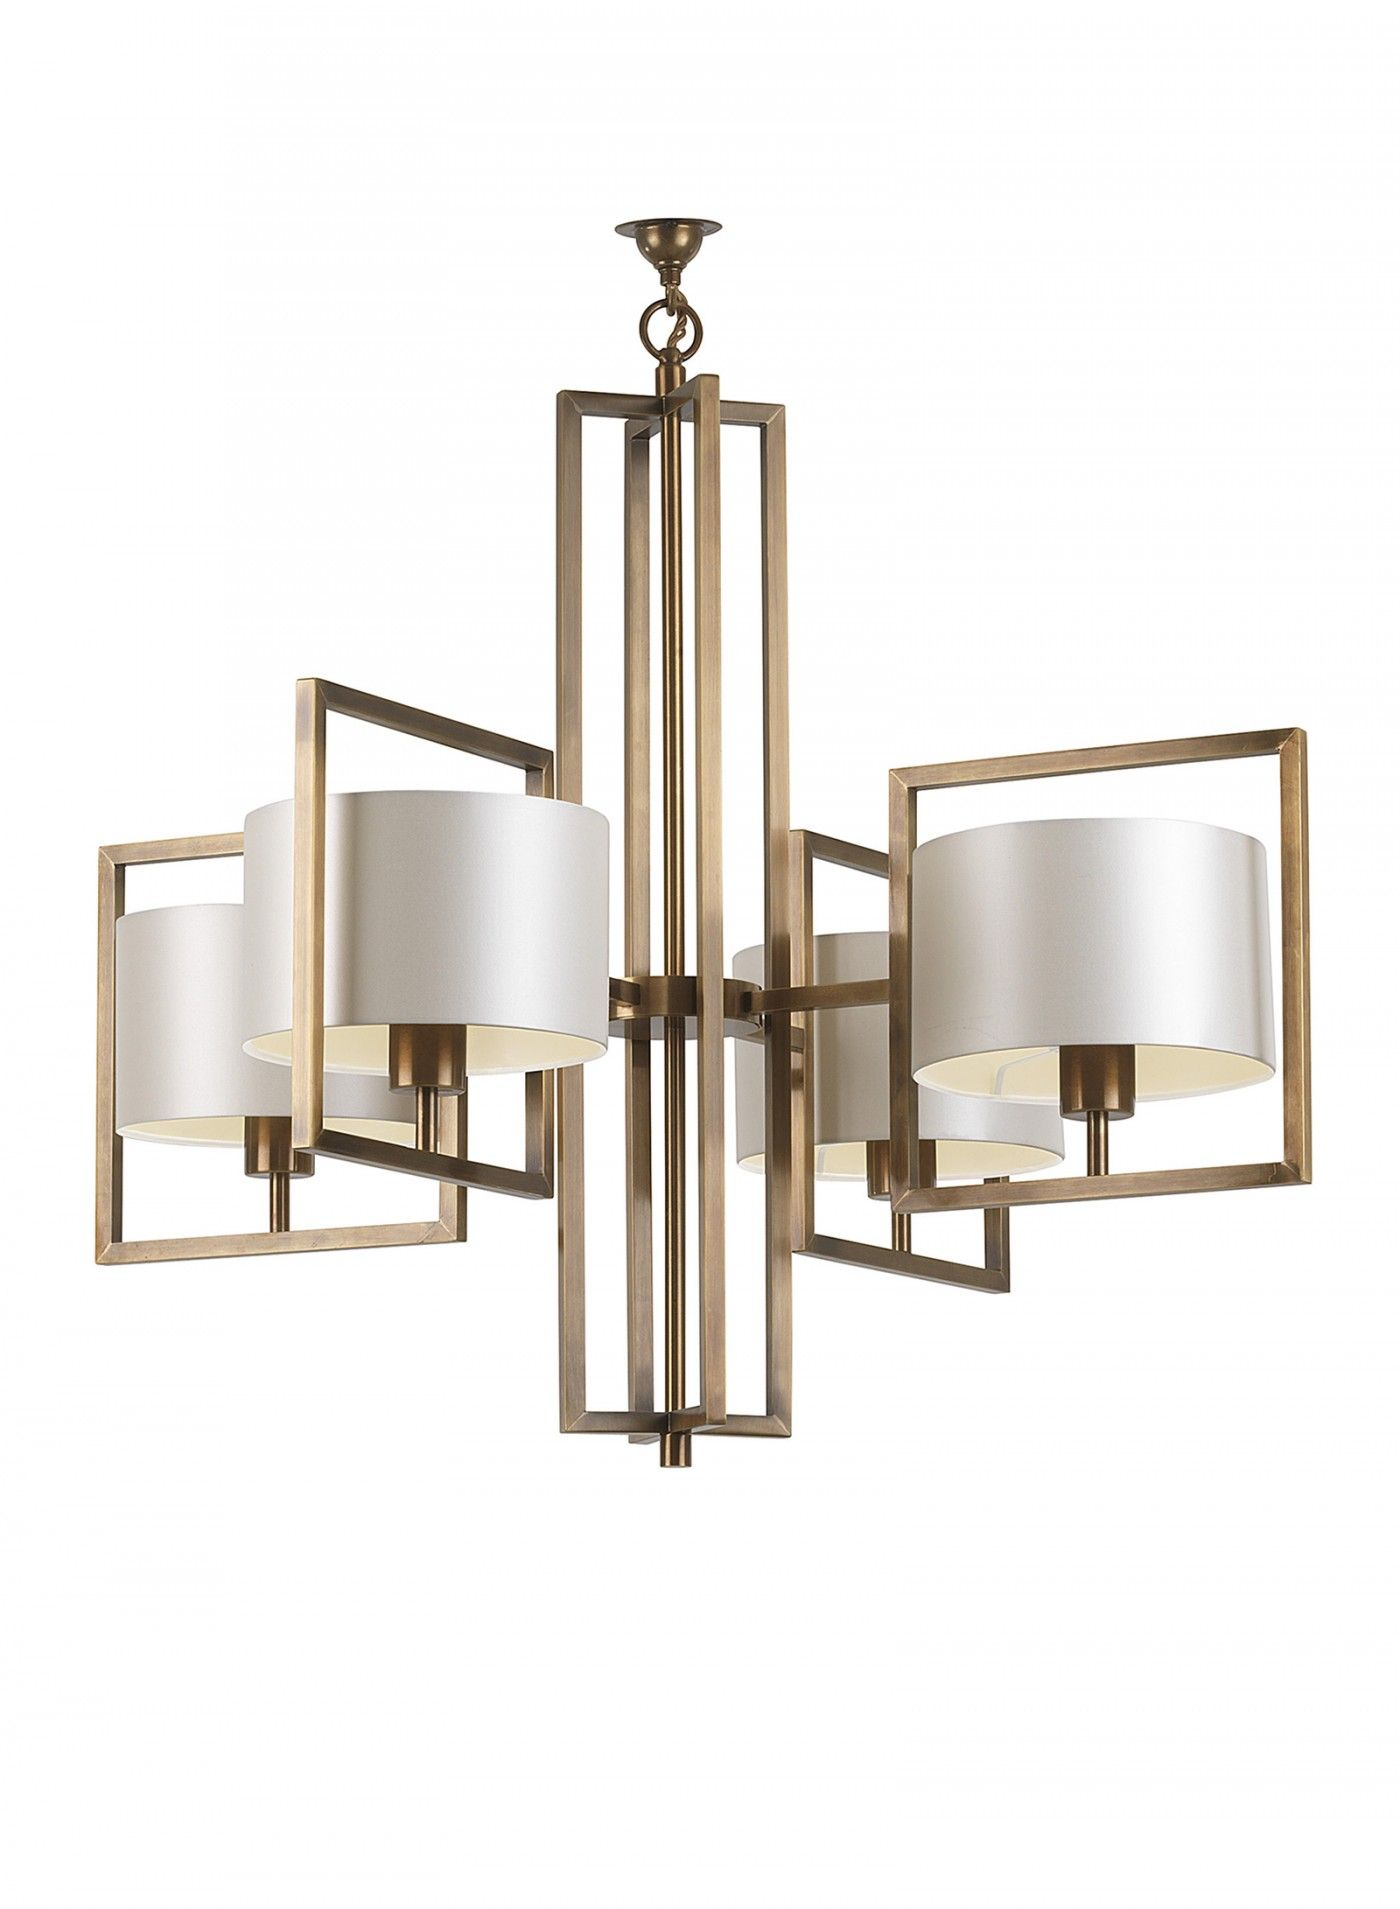 Knollwood 4 Light Antique Bronze Linear Chandelier with Vintage Brass Accents and Clear Glass Shades